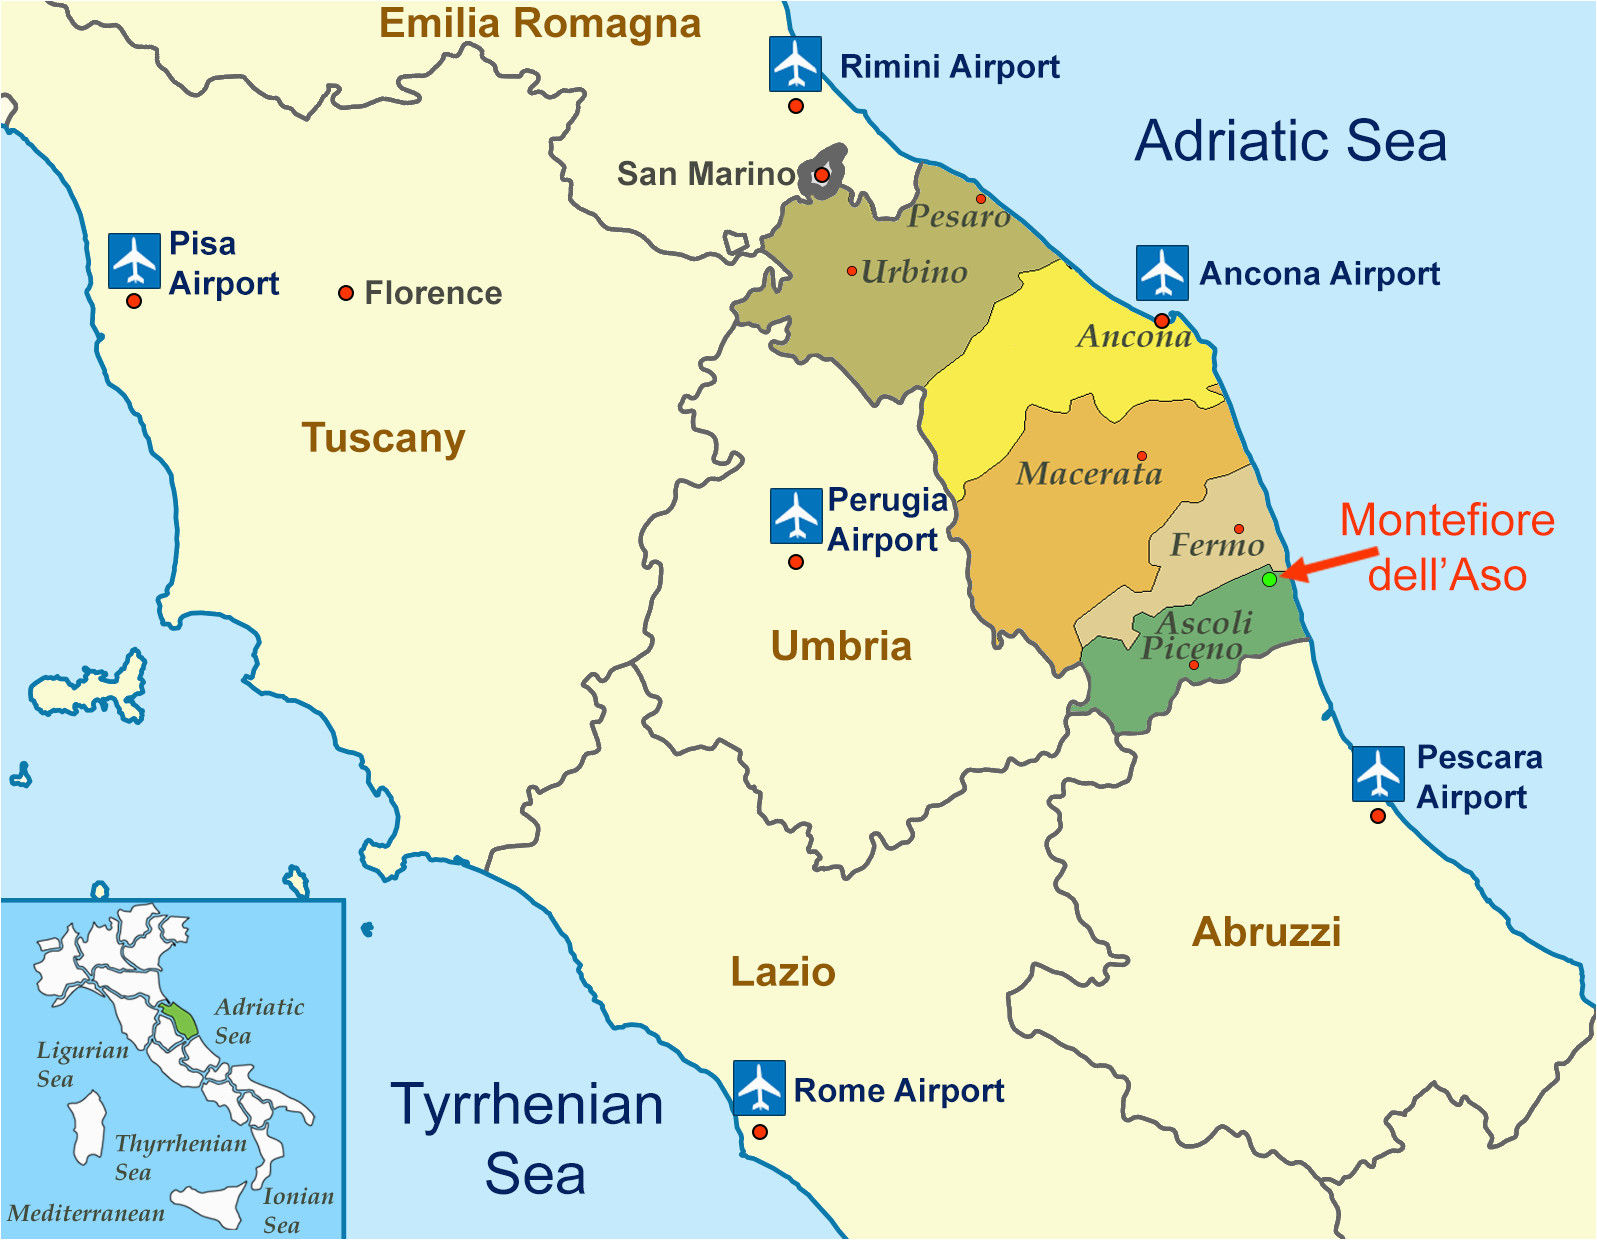 location of montefiore dell aso province ascoli piceno capital of